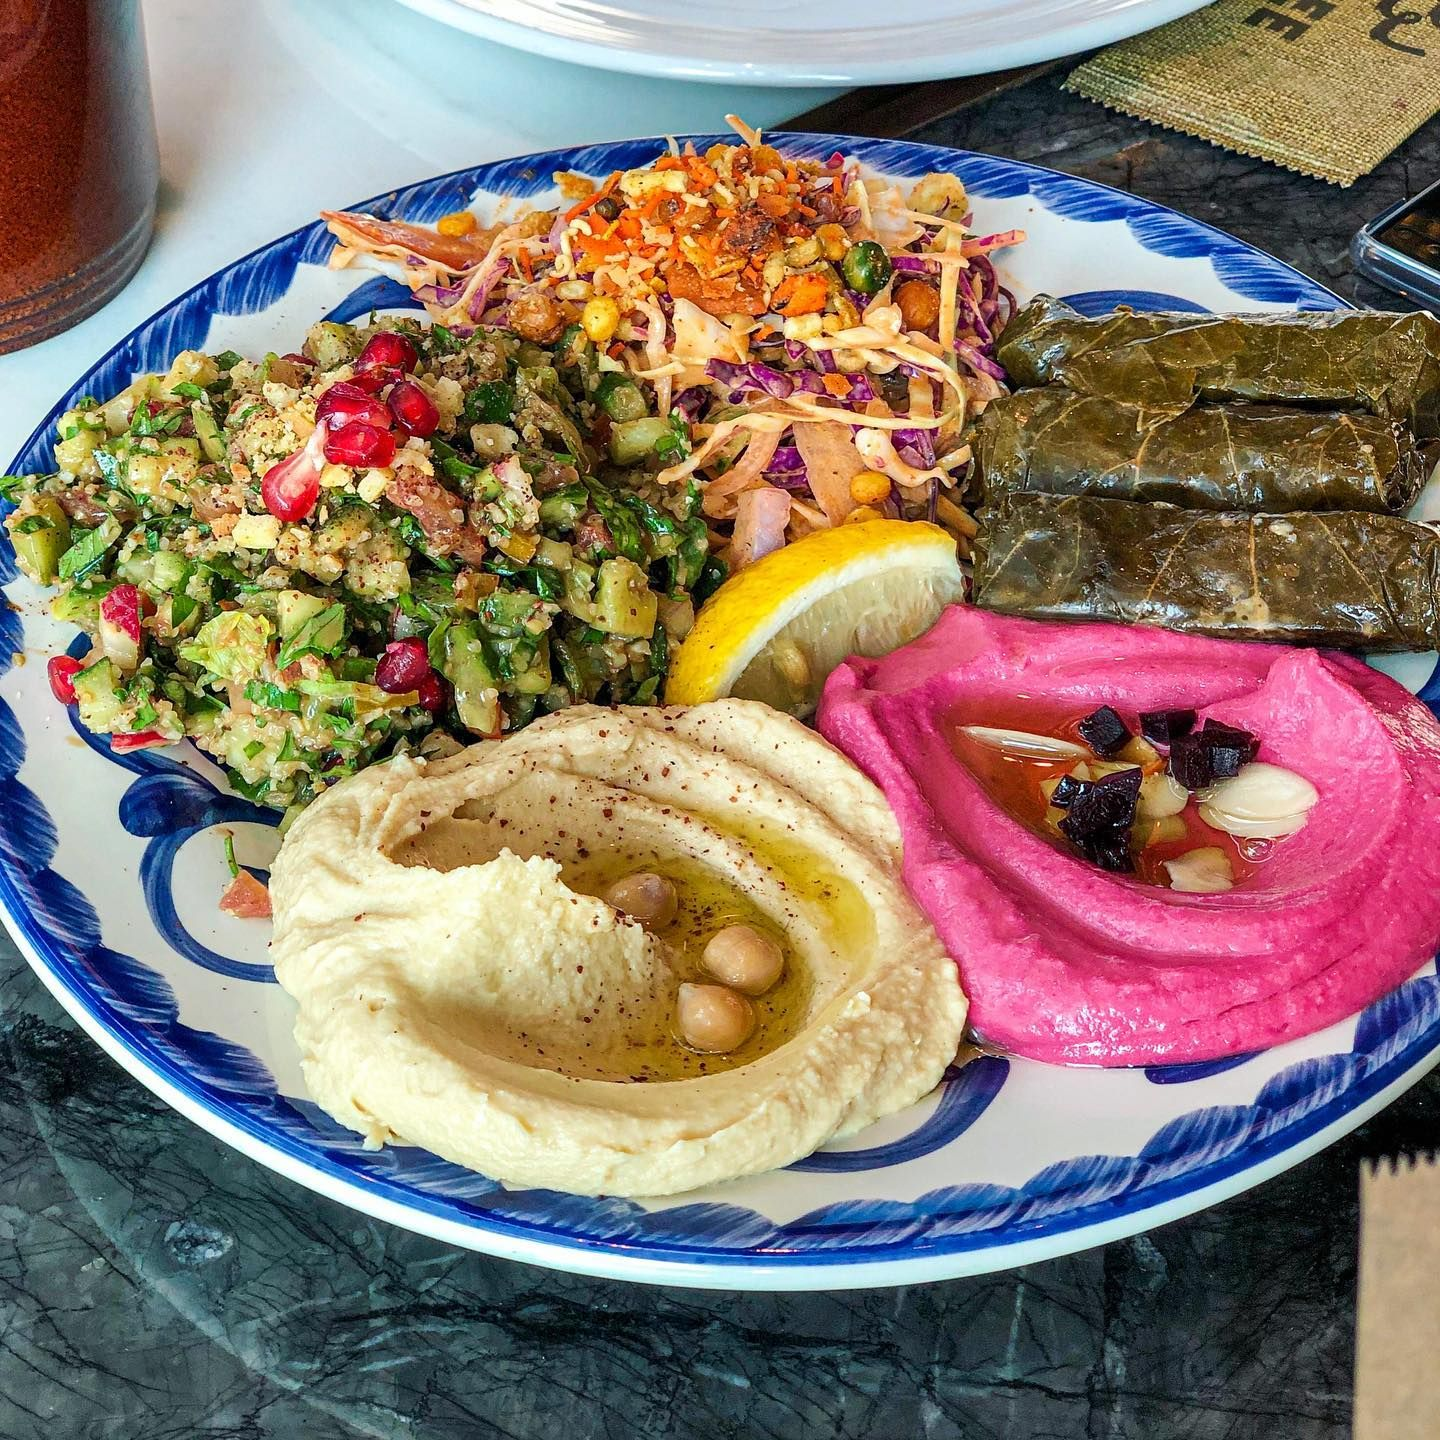 Eat The Rainbow At Lumeestreet With Their Selection Of Appetizers And Salads Above The Appetizer Platter Where You Food Appetizer Platters Starters Menu